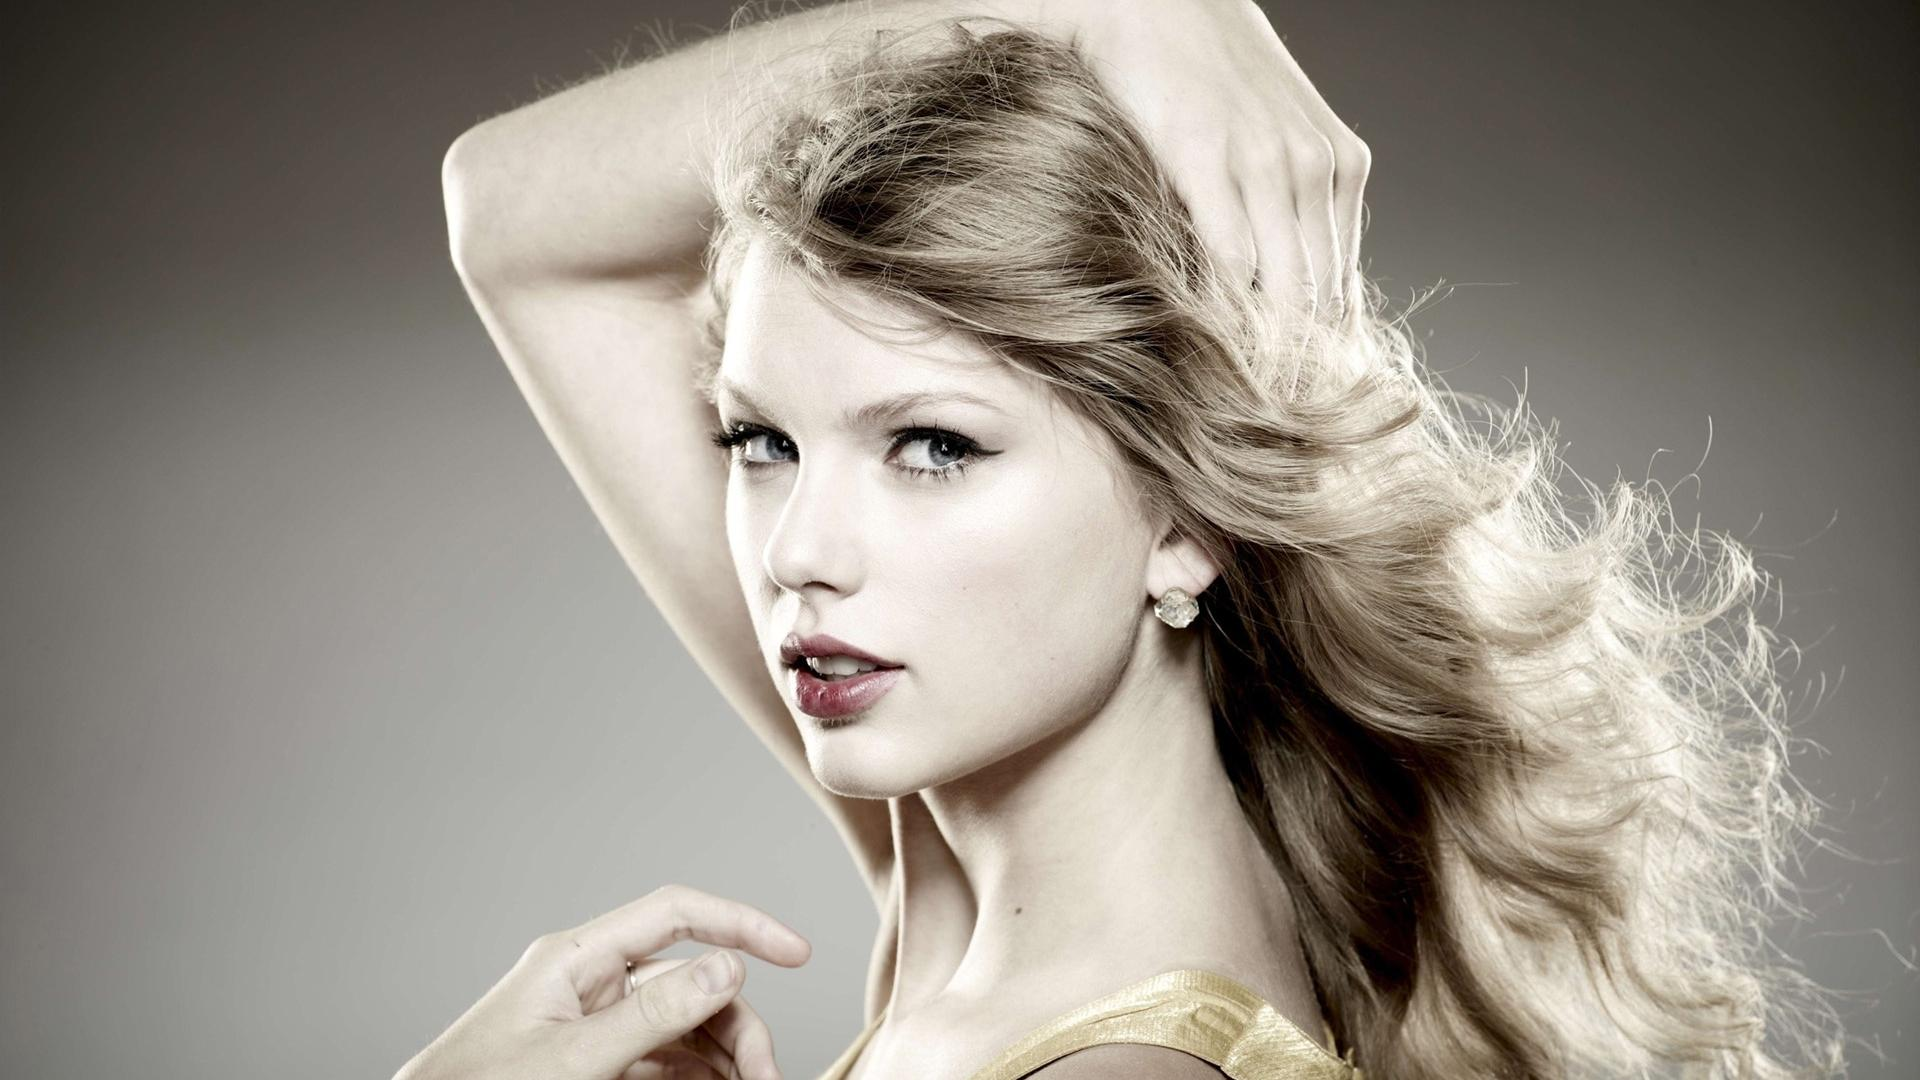 TAY TAY - Taylor Swift Photo (32049011) - Fanpop